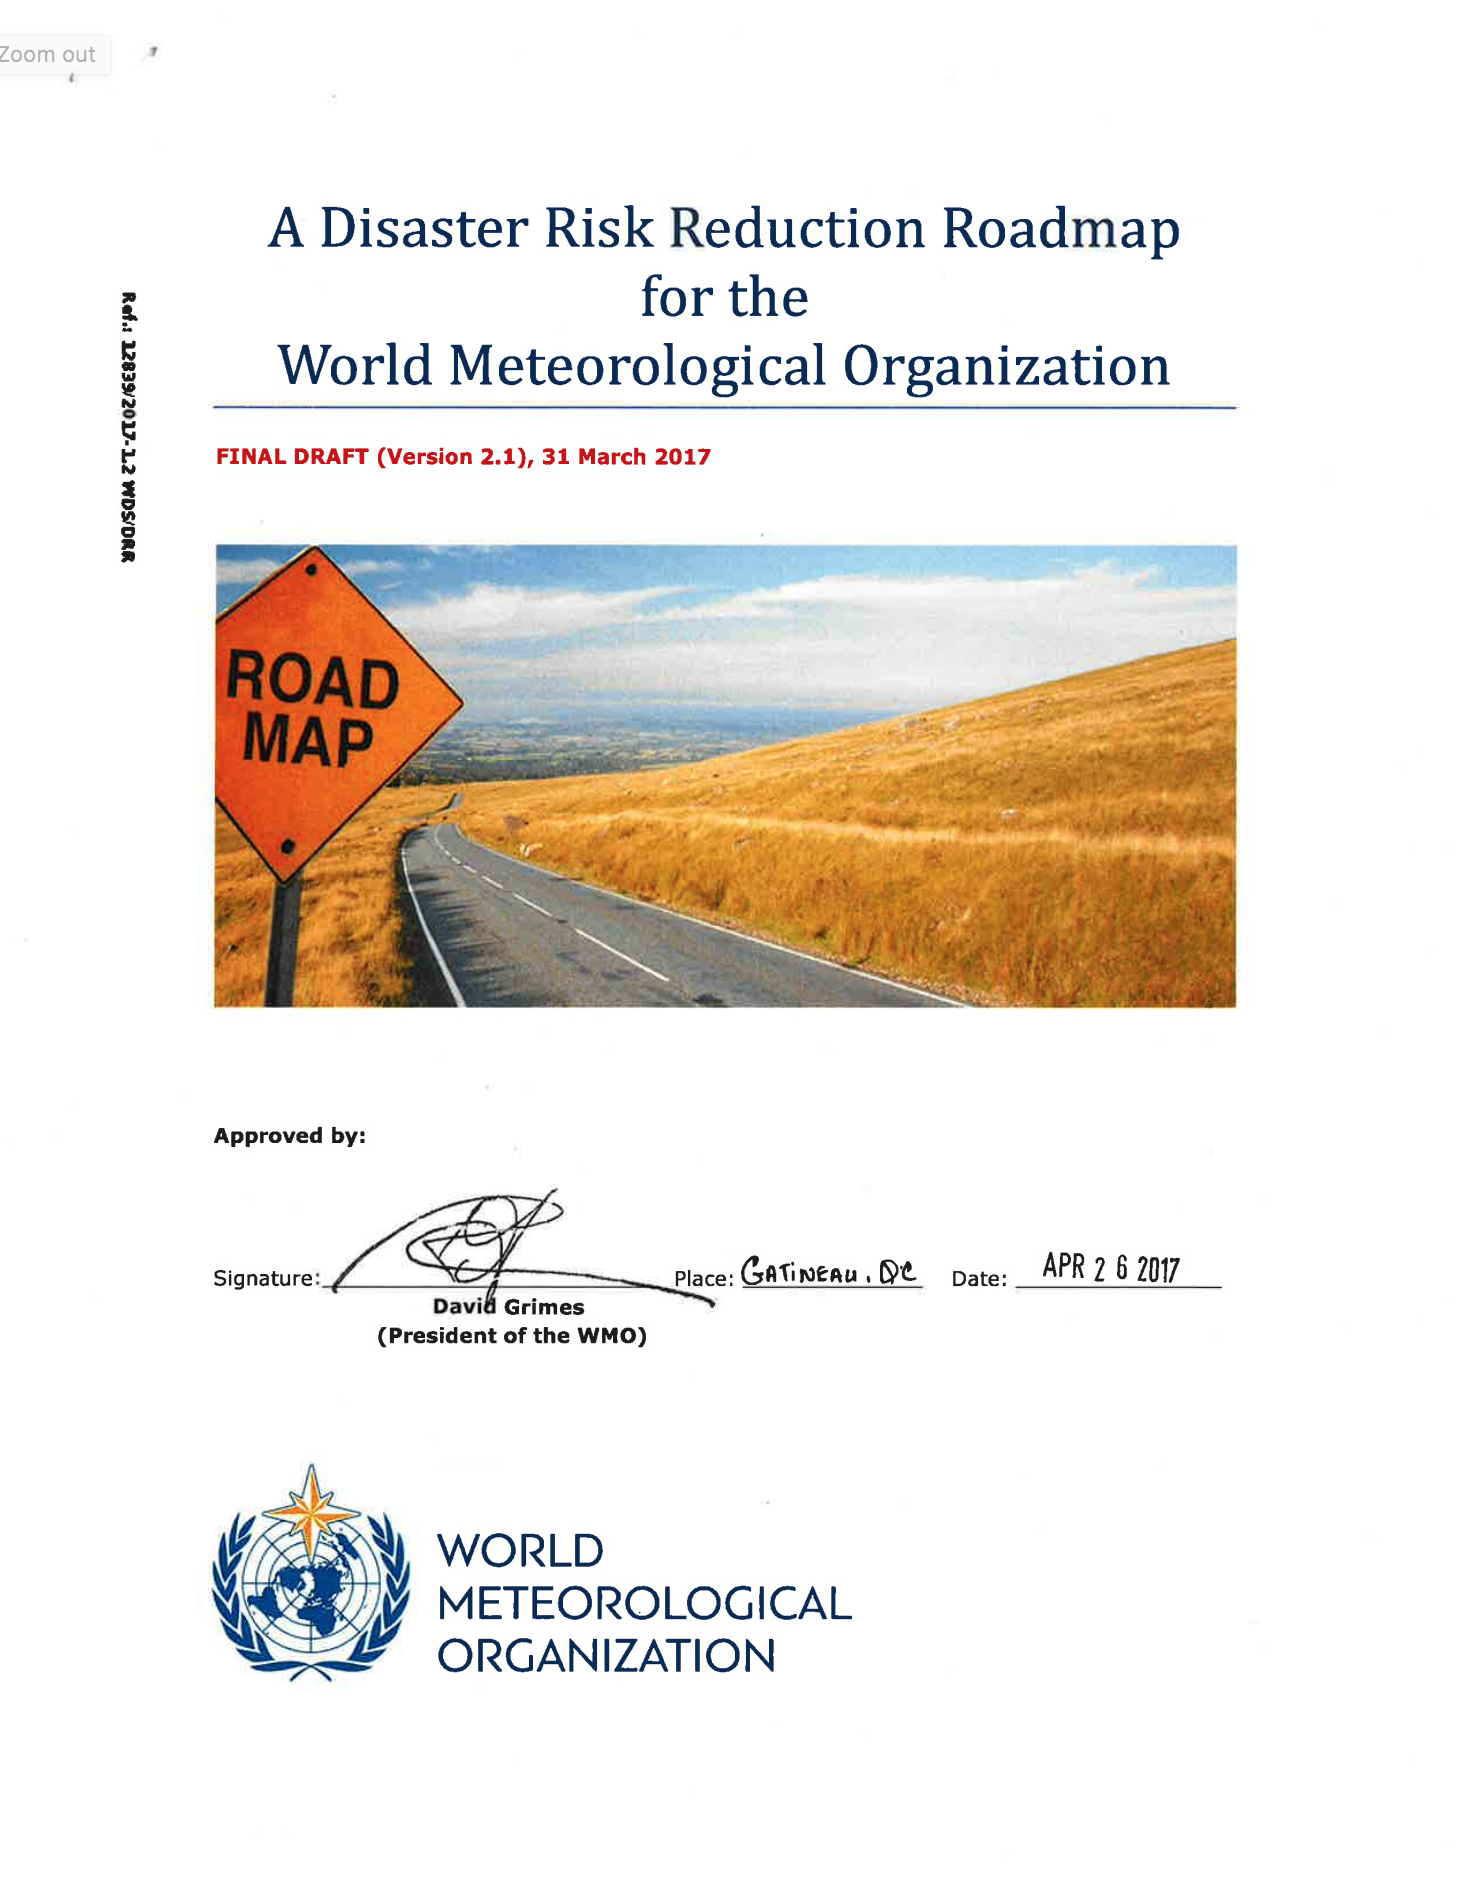 A Disaster Risk Reduction Roadmap for the World Meteorological Organization